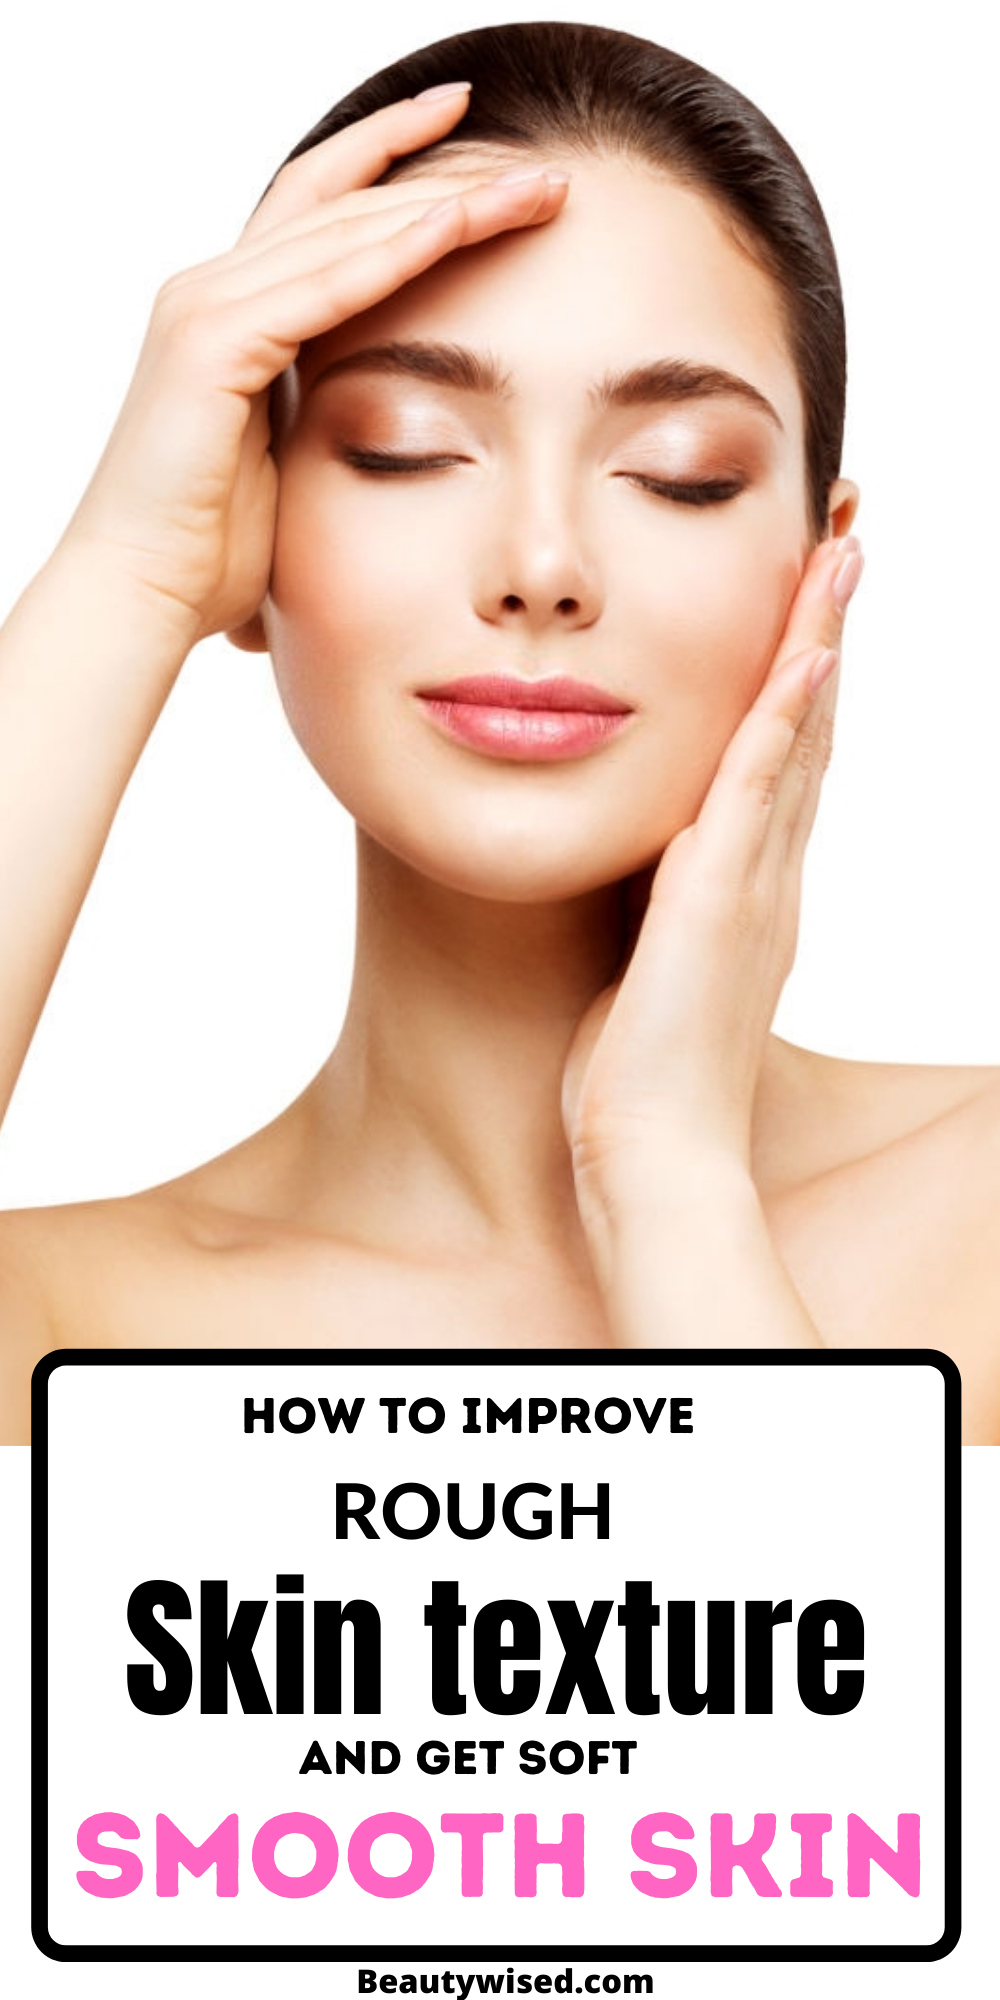 15 secret tips & remedies to get rid of dry rough skin